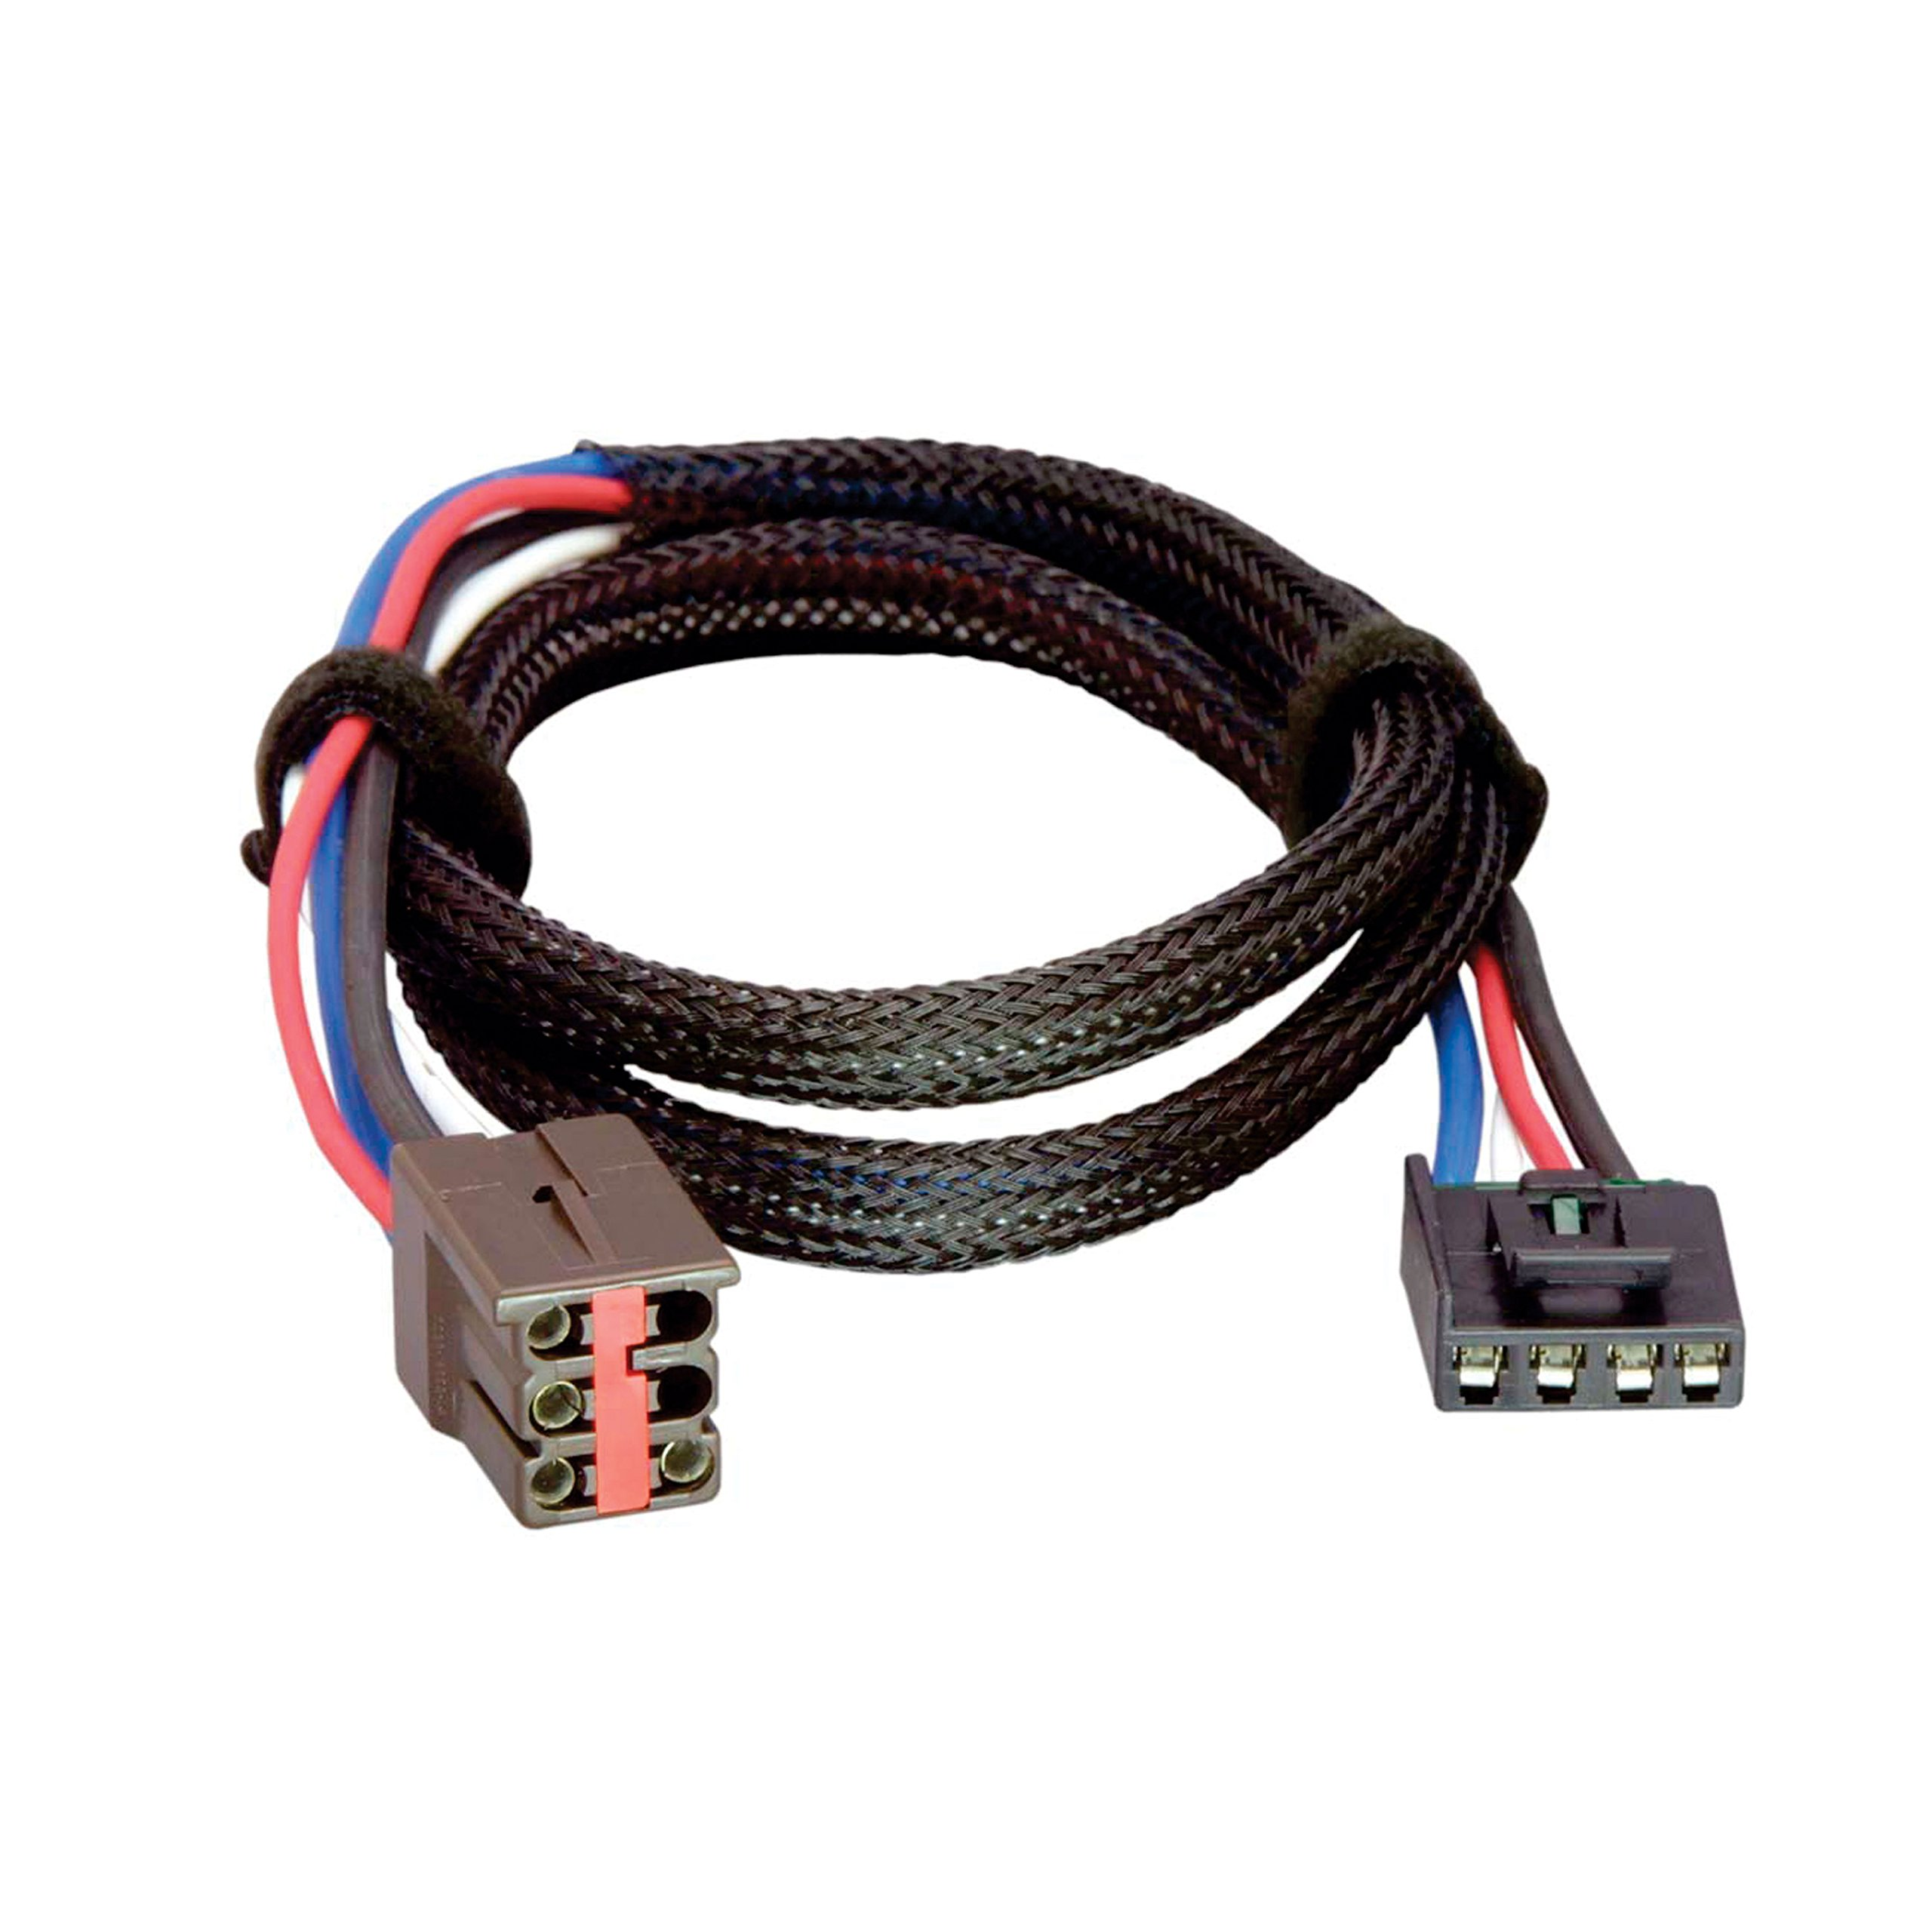 Amazon.com: Tekonsha 3035-P Brake Control Wiring Adapter for Ford:  Tekonsha: Automotive